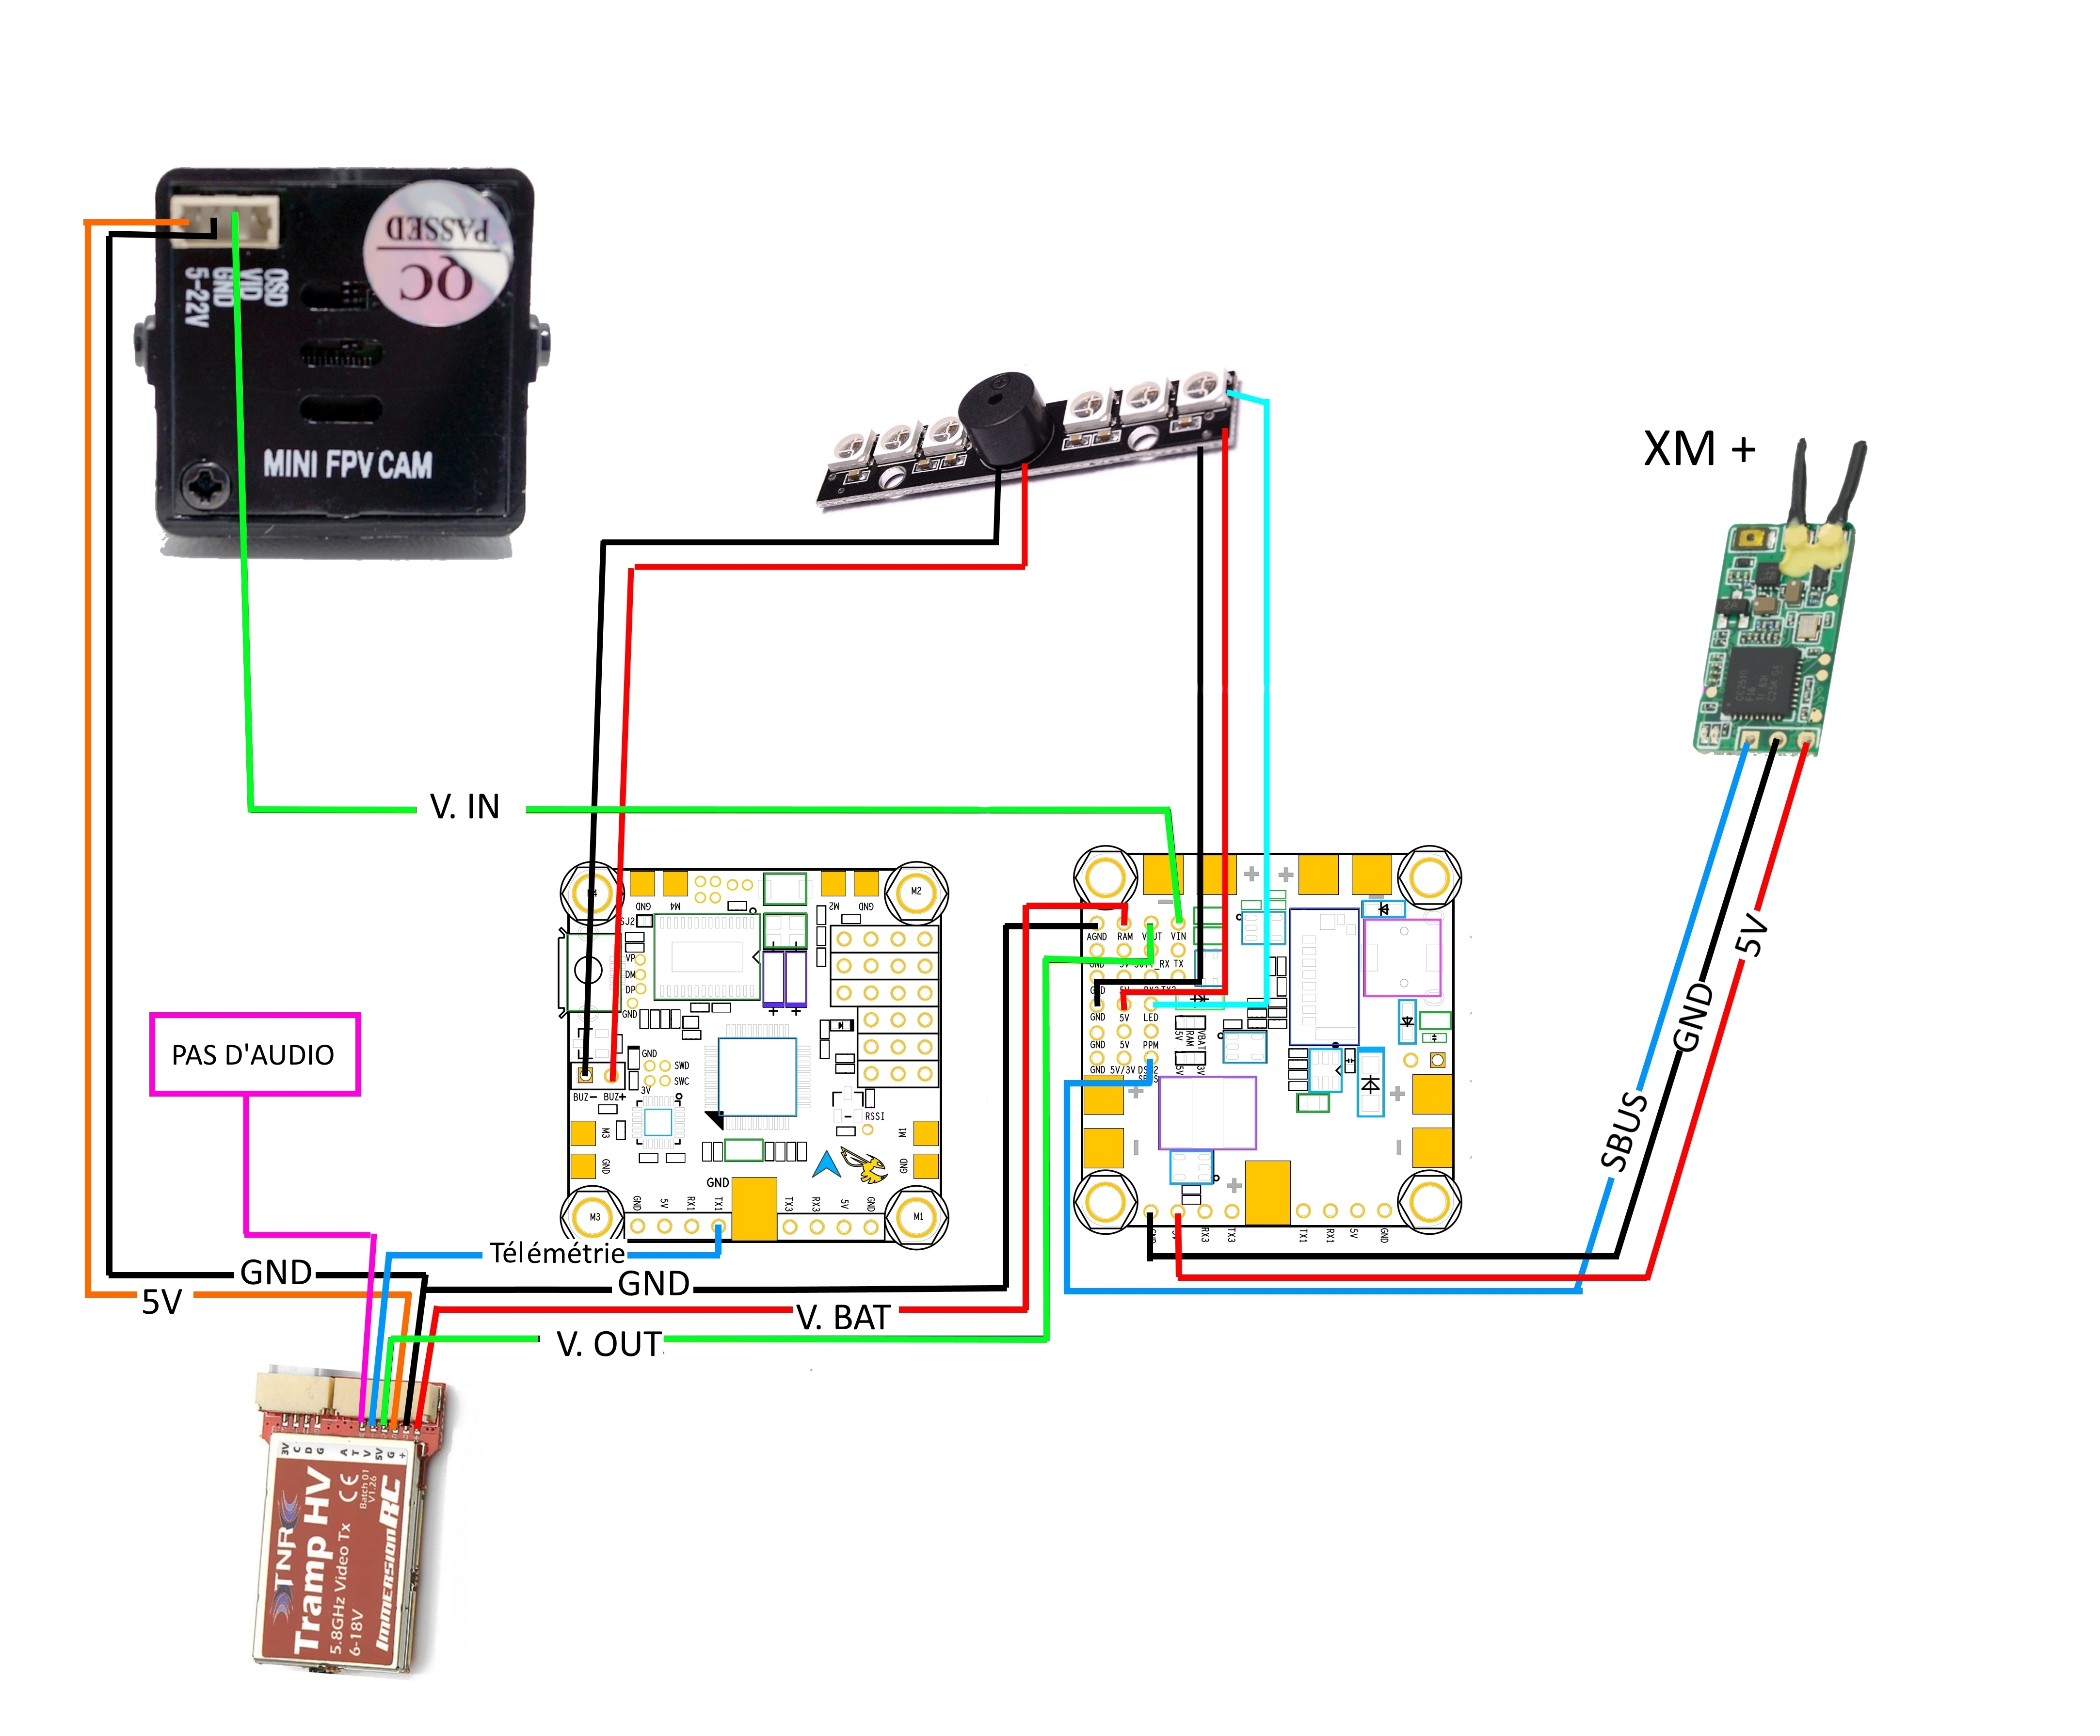 immersionrc-wiring-diagram-8 Light Switch With Pilot Wiring Diagram on leviton three-way switch diagram, pilot operated check valve schematic, switch with pilot light diagram, pilot valve diagram, pilot light switch with wires 4, pilot tube assembly, pilot switch install,